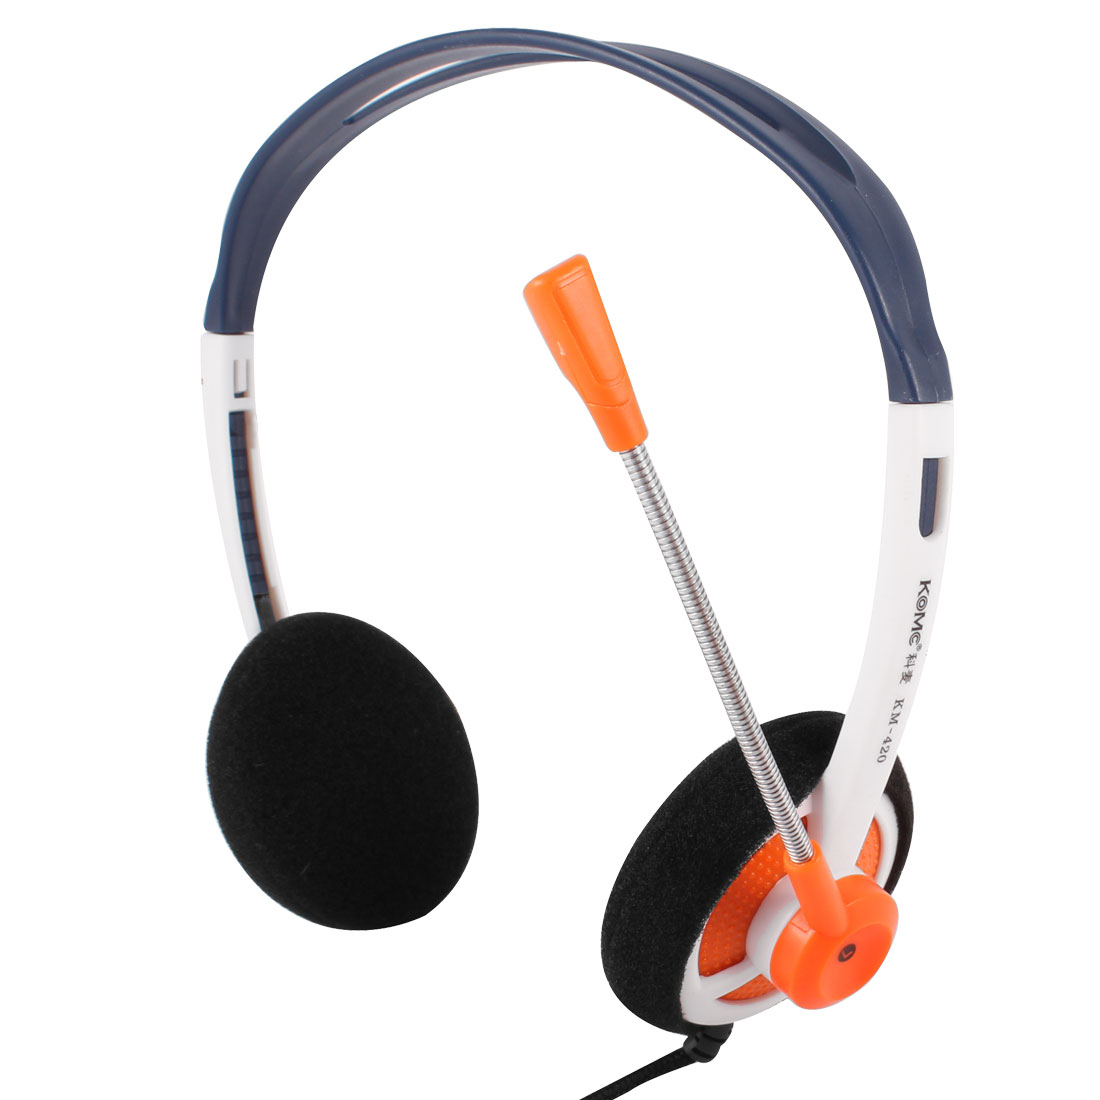 Tri Color Rotatable Microphone PC Computer Headphone Headset 3.5mm Plug